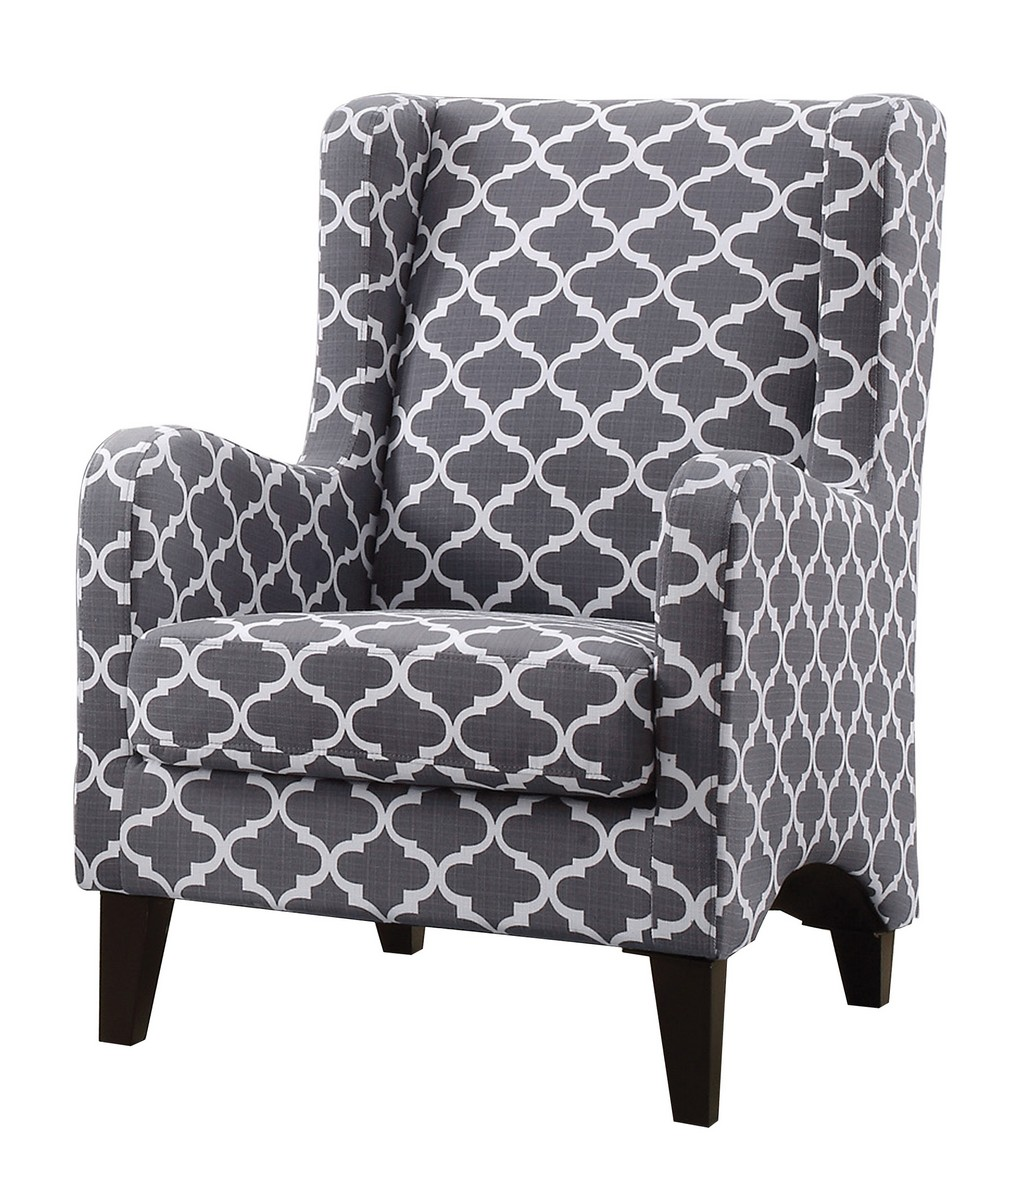 Homelegance Adlai Accent Chair   Grey